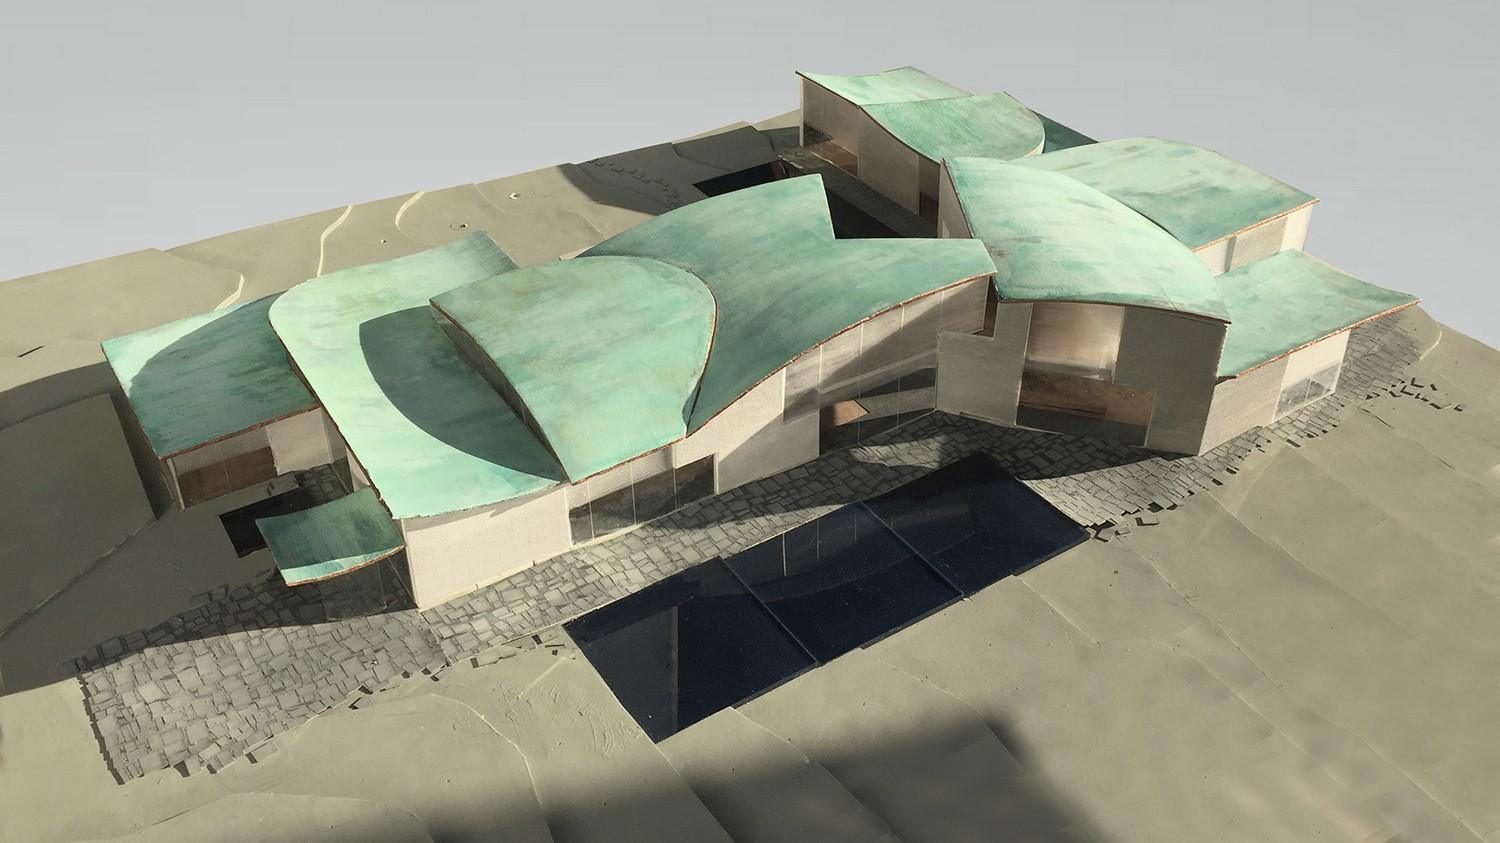 https://stevenholl.sfo2.digitaloceanspaces.com/uploads/projects/project-images/StevenHollArchitects_IAS_Model_WH.jpg